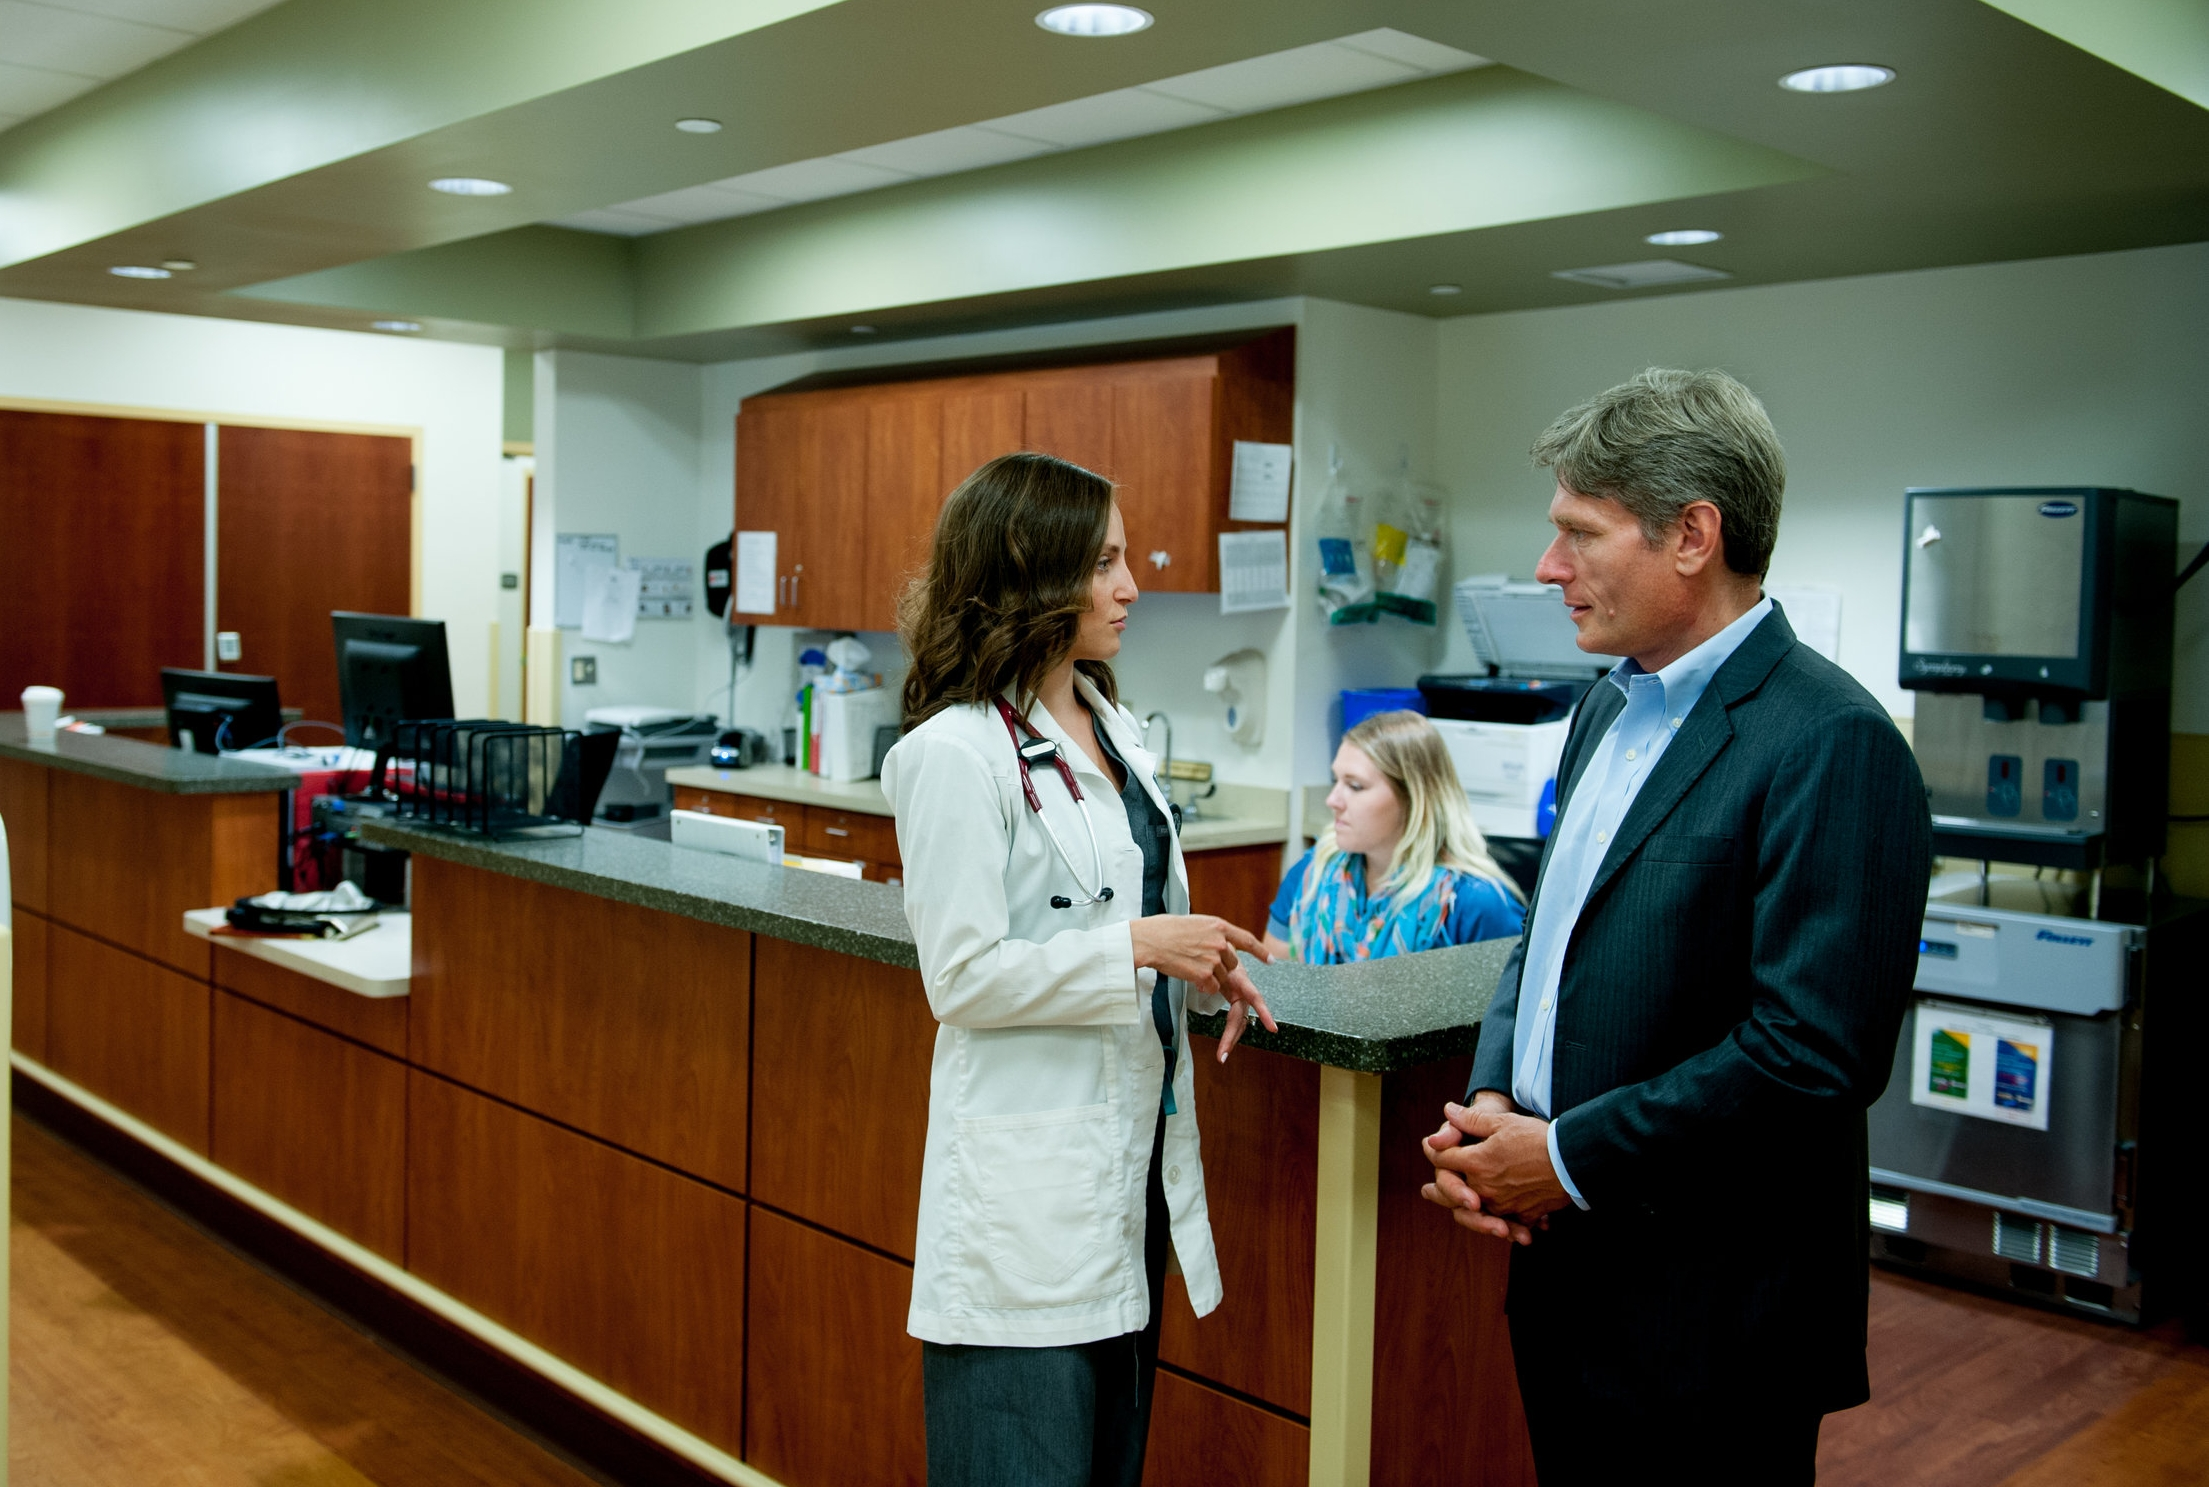 Tom Malinowski Touring Healthcare Facility